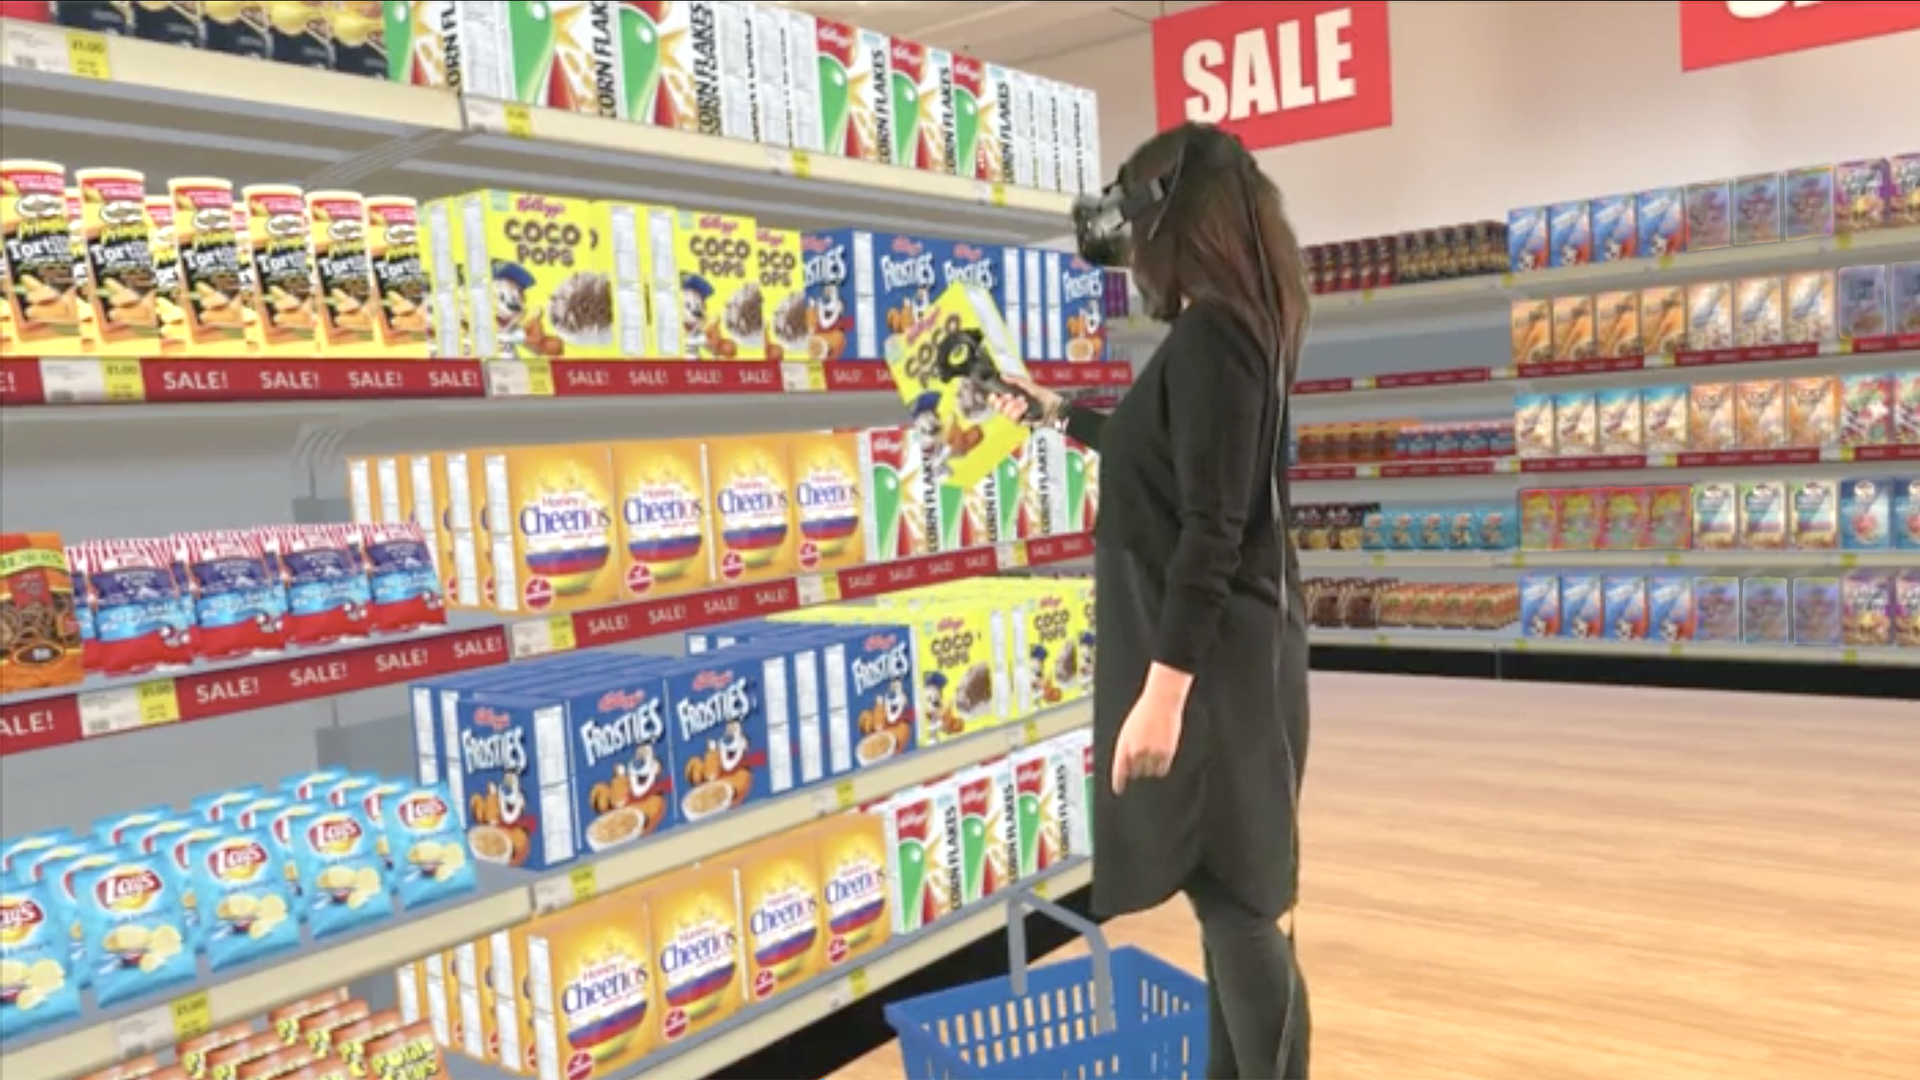 A shopper enters a VR supermarket and browses through the products